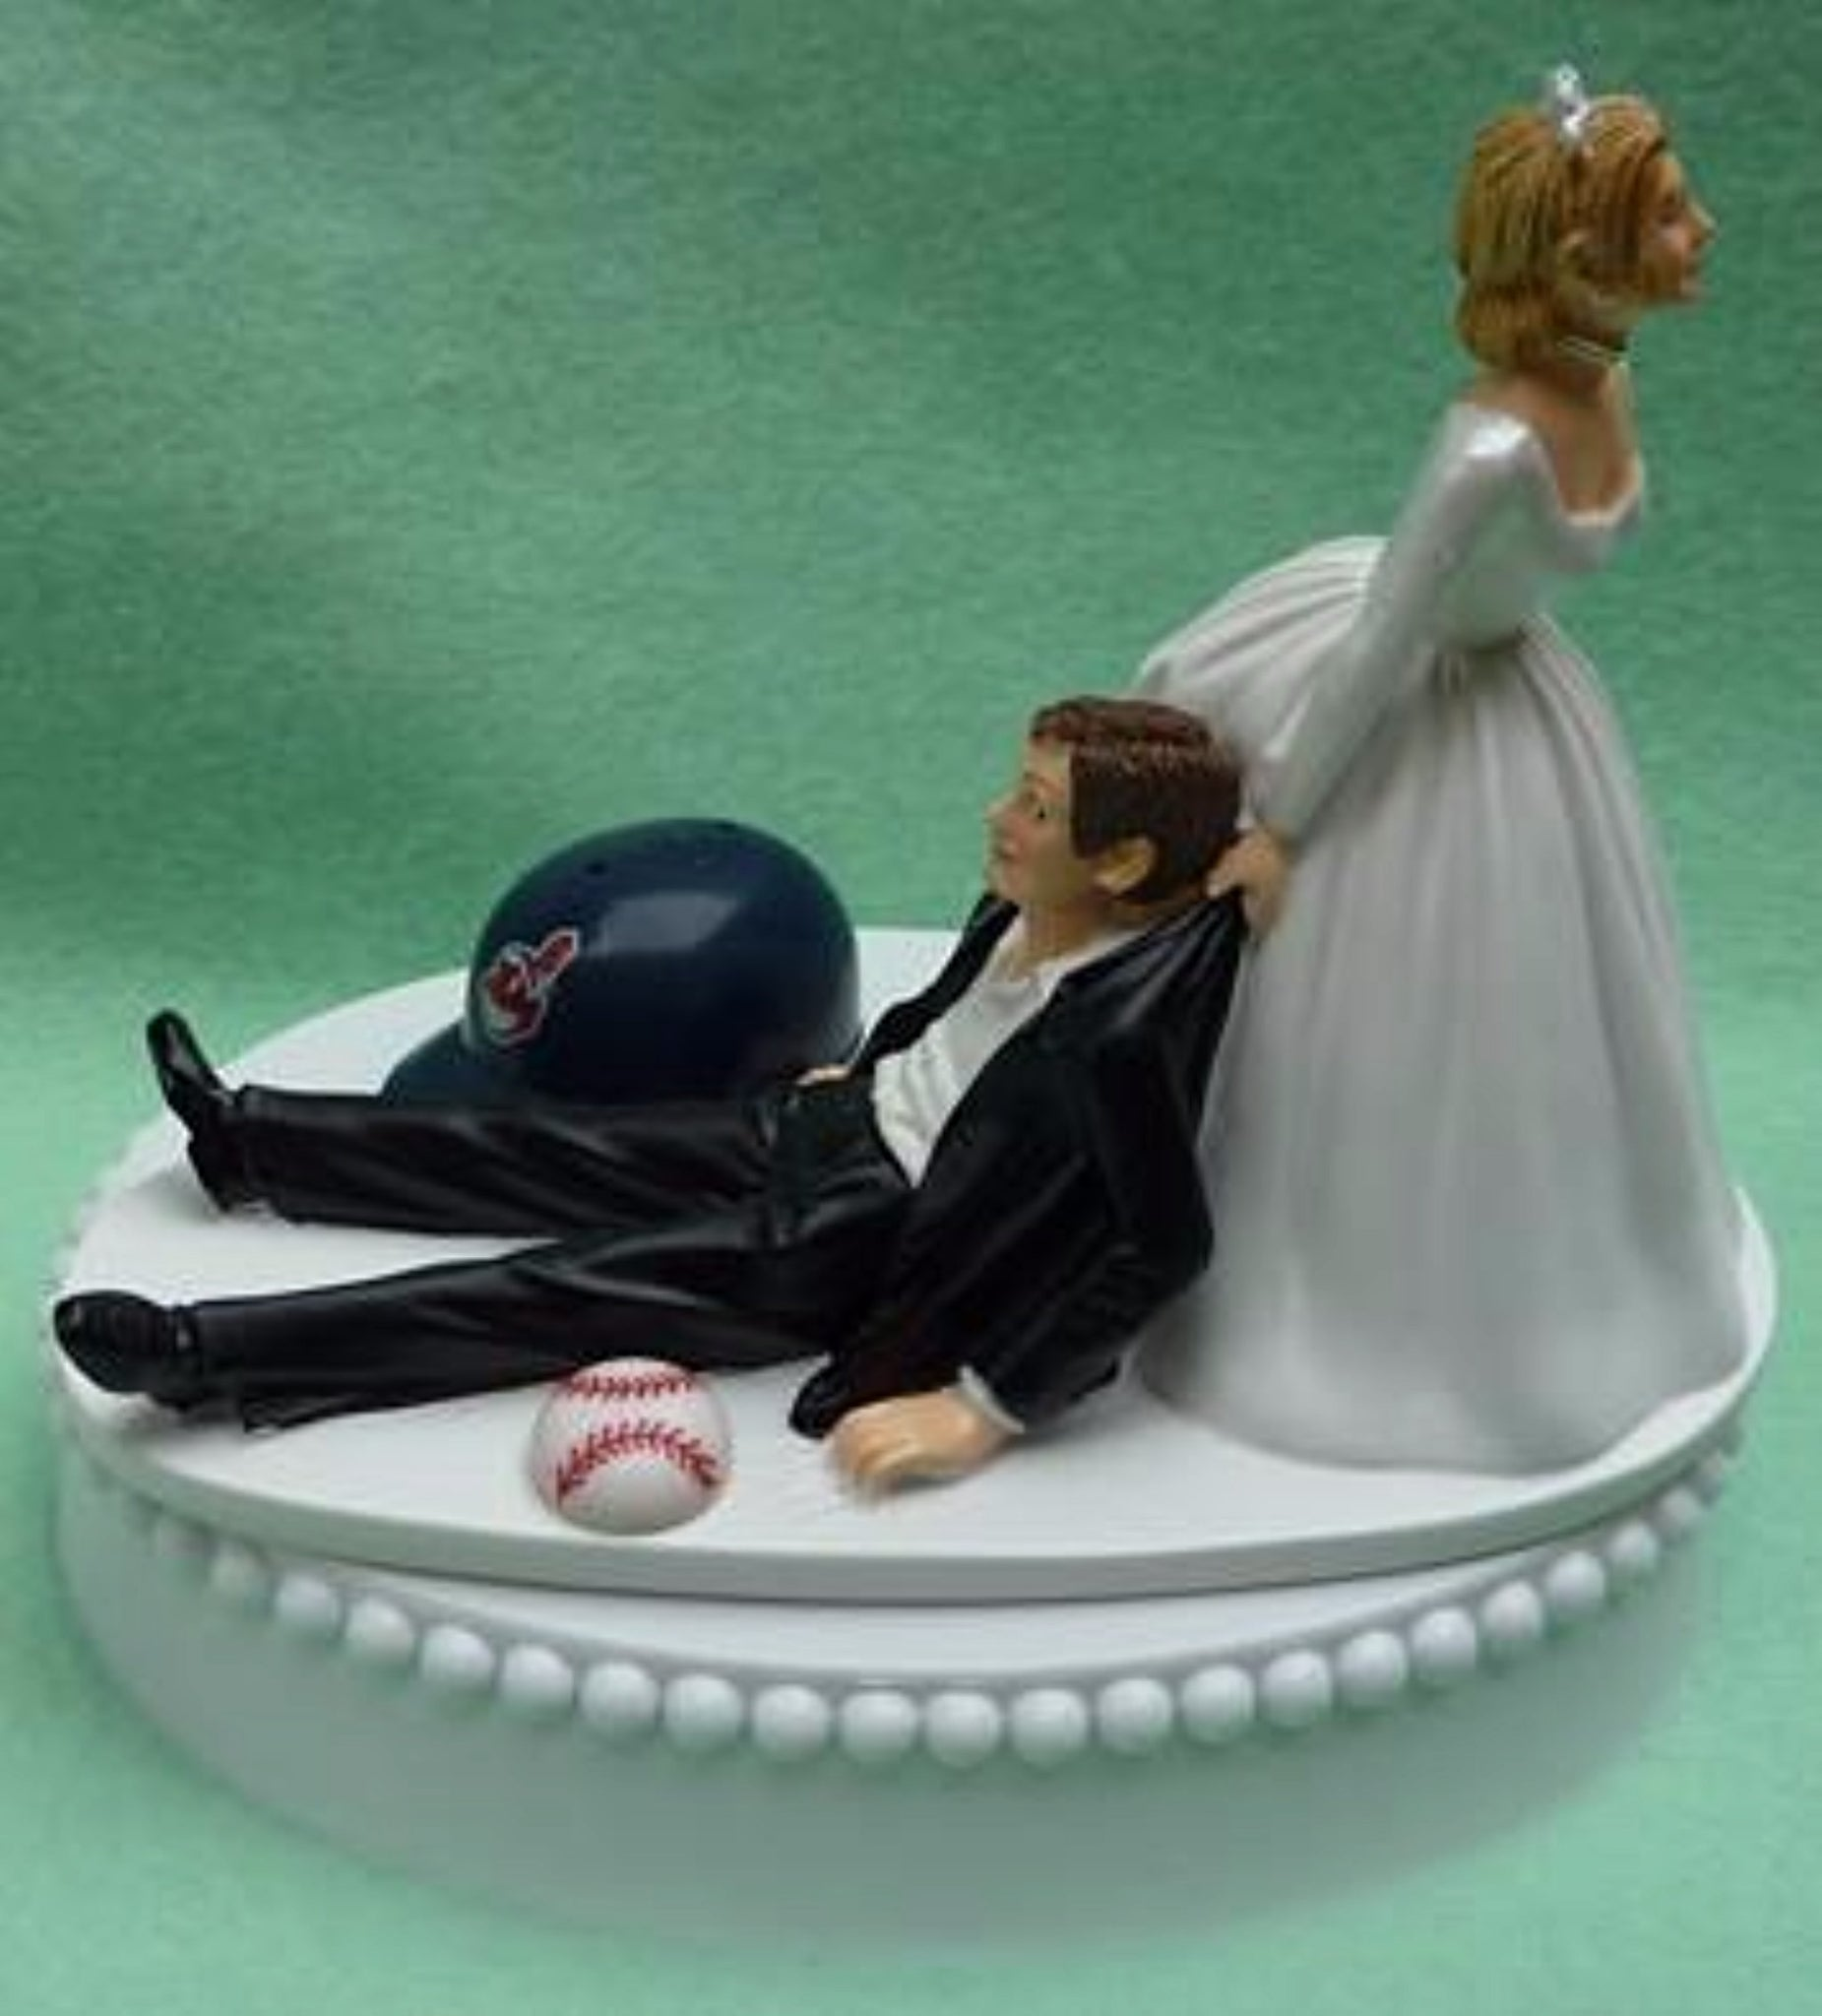 Cleveland Indians wedding cake topper MLB baseball sports fans fun bride drags groom humorous funny